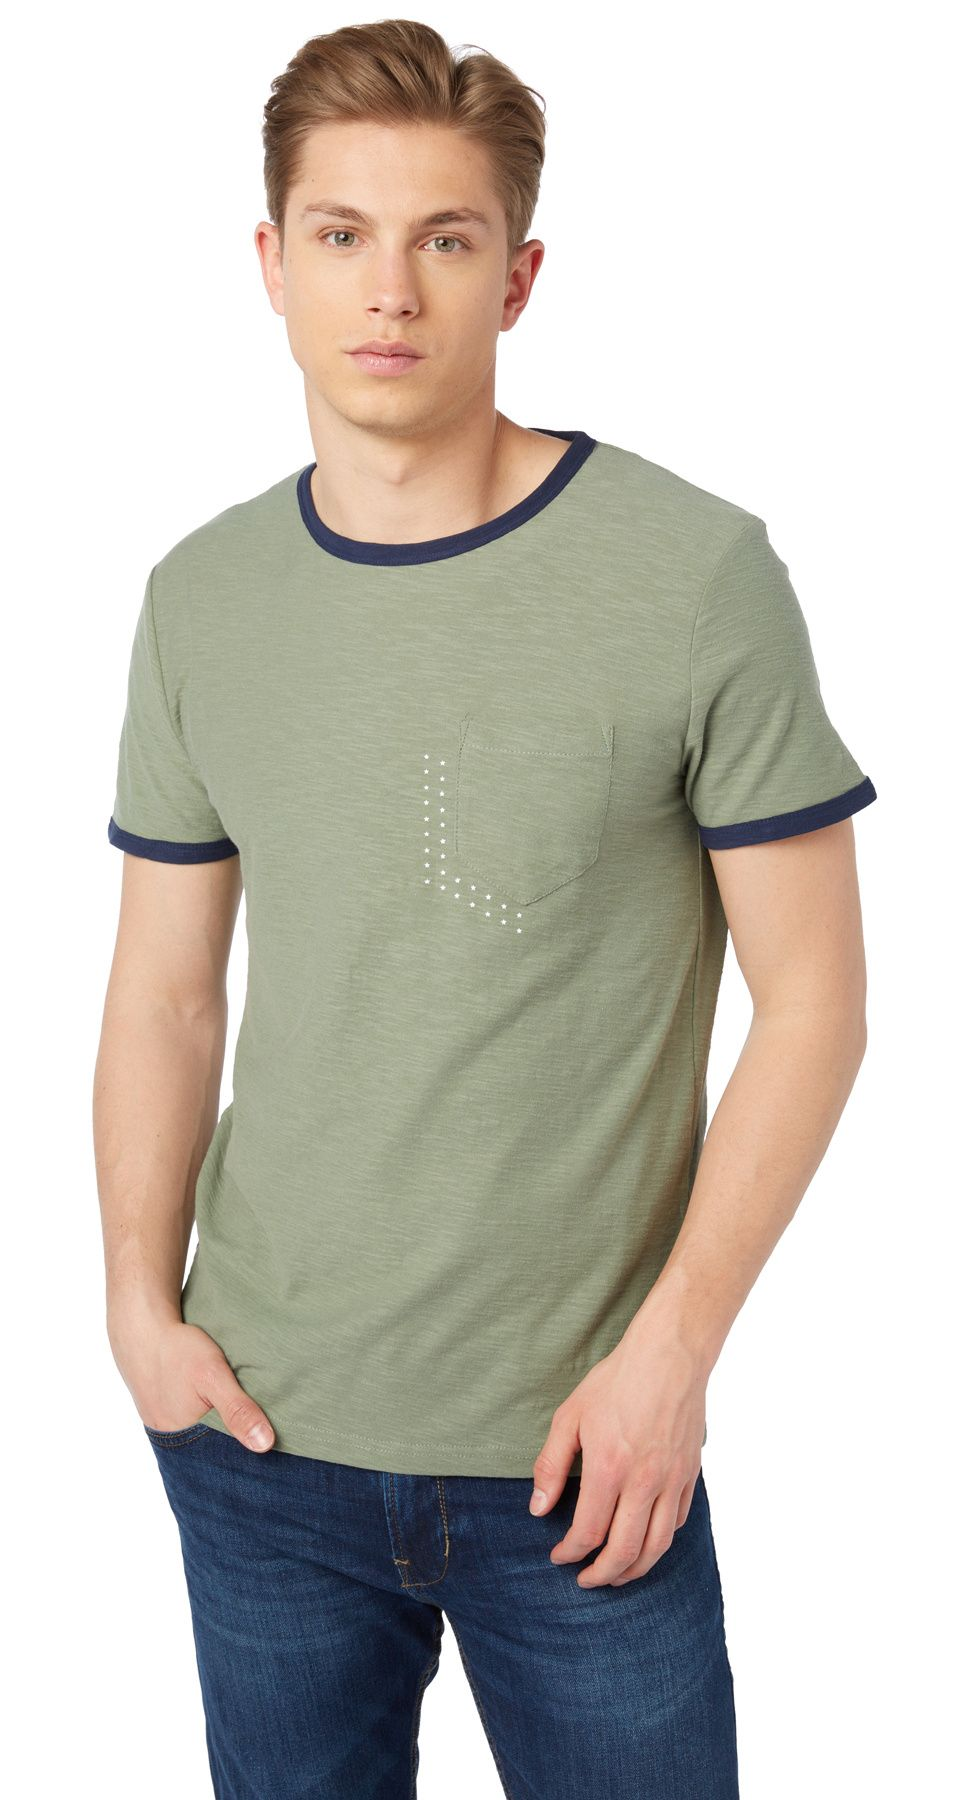 T Shirt With Contrasting Trims For Men Plain Coloured Short Sleeves With Crew Neck Tom Tailor